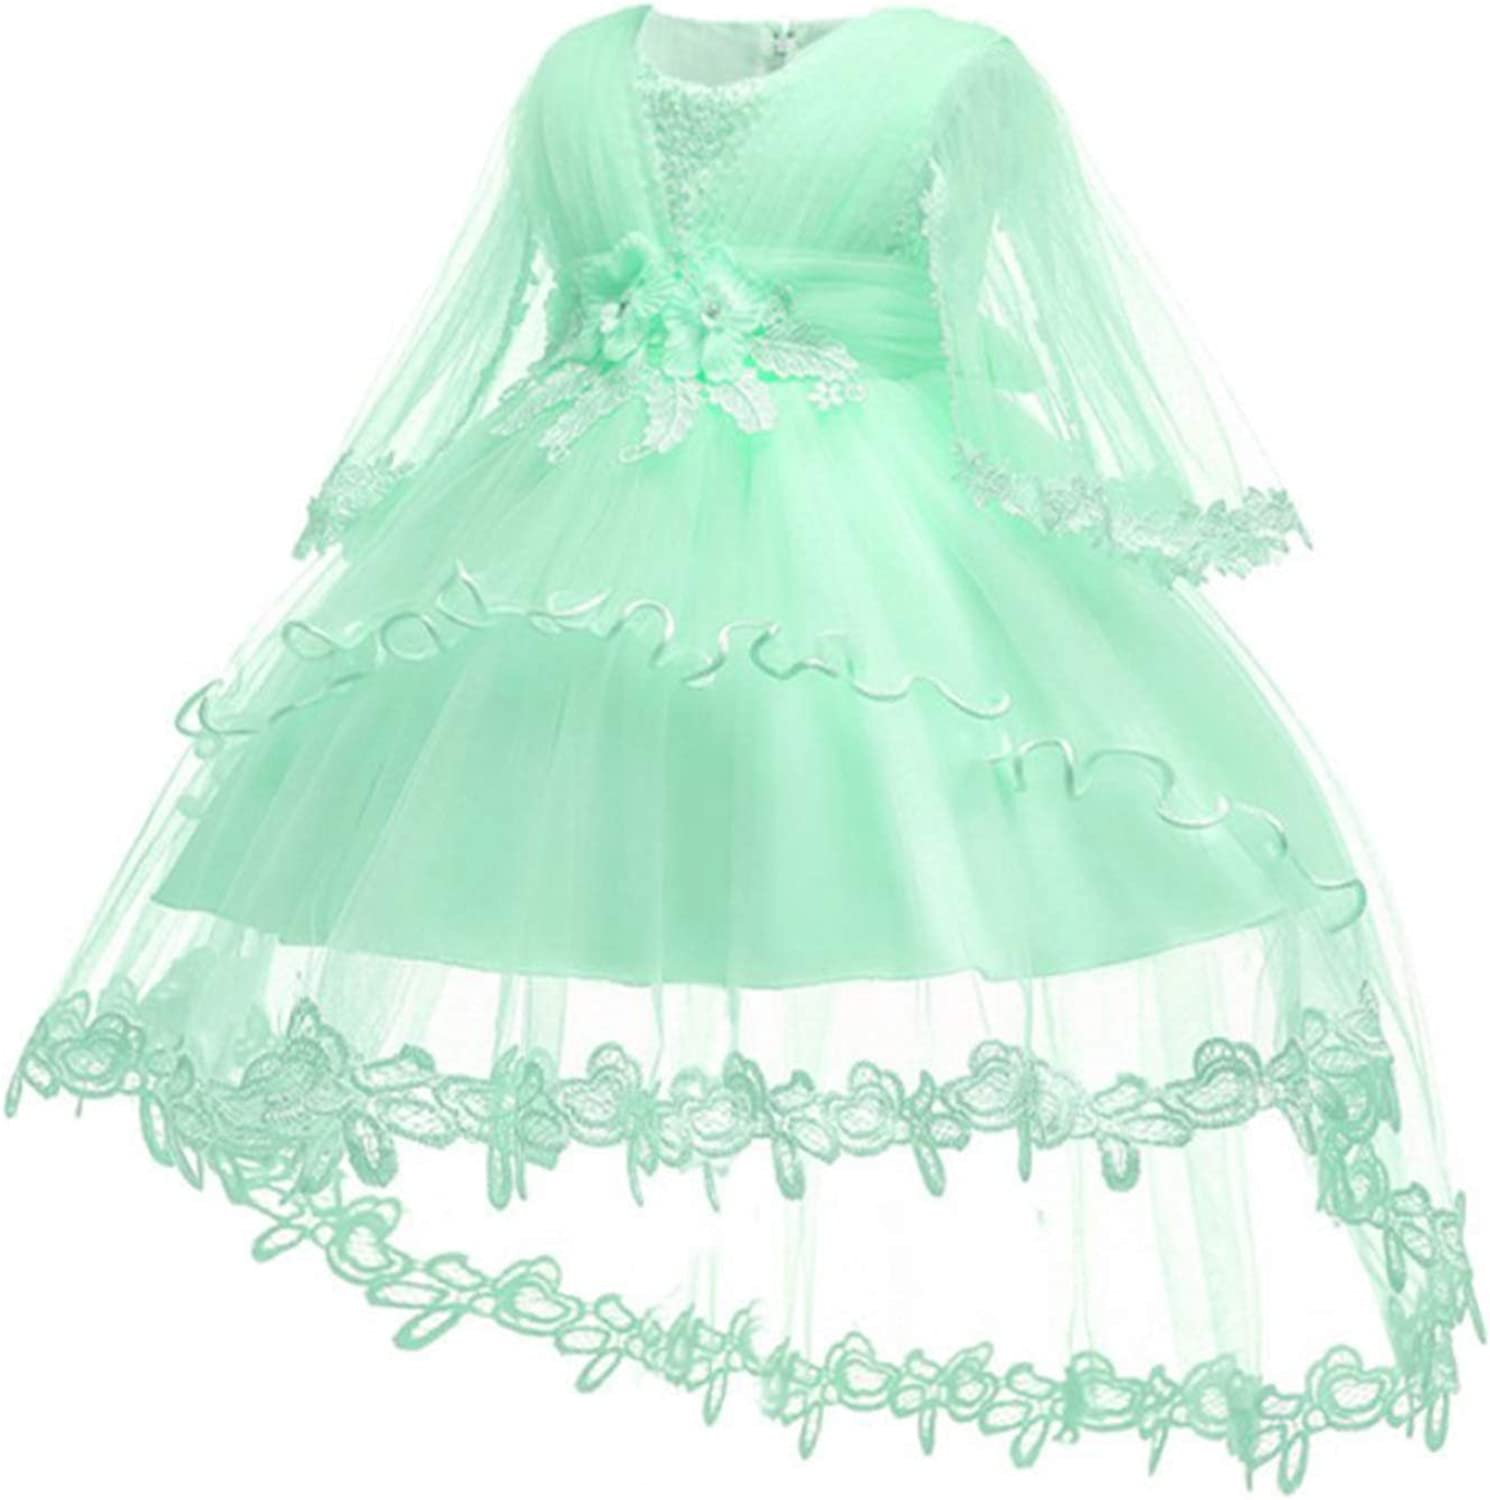 Baby Girl 1 Year Birthday Dress Formal Petals Tulle Toddler Girl Dress Infant Princess Party Dresses for Girls 0-2 Y